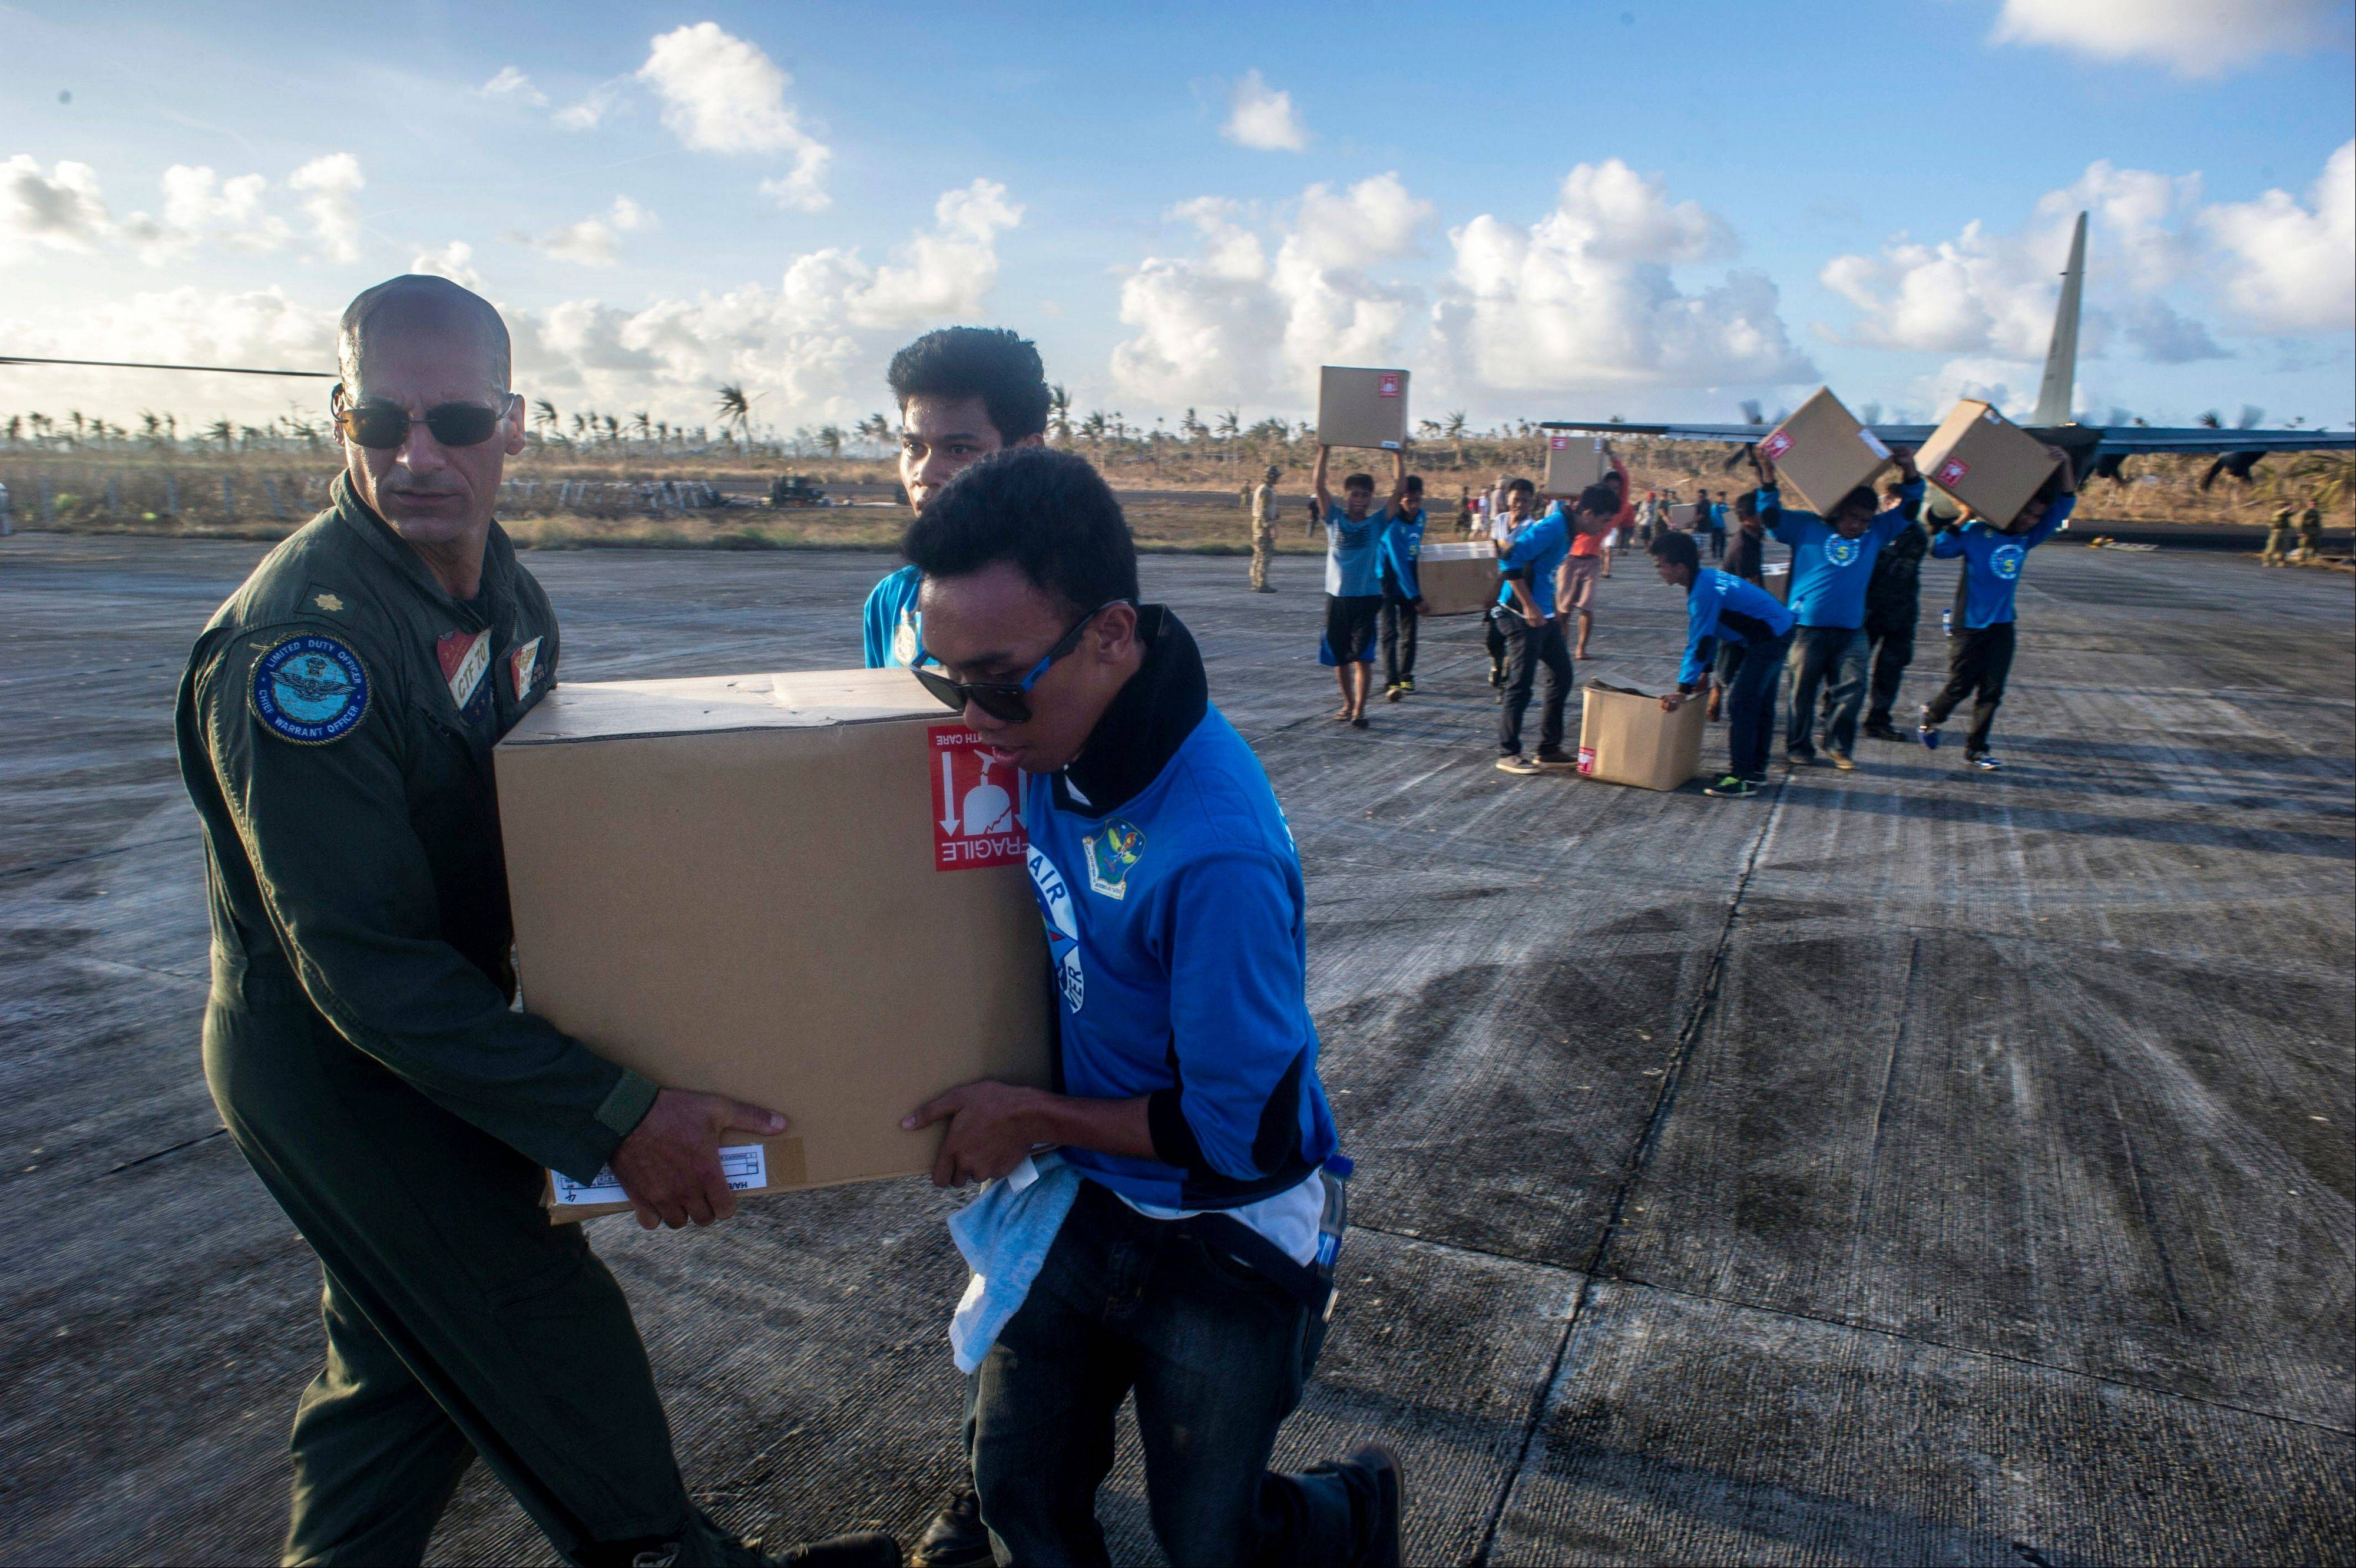 Lt. Cmdr. Mike DeVito, left, aboard the aircraft carrier USS George Washington, helps a member of the Filipino Air Force carry a box of relief supplies in support of relief efforts in the aftermath of the Super Typhoon Haiyan on Saturday.